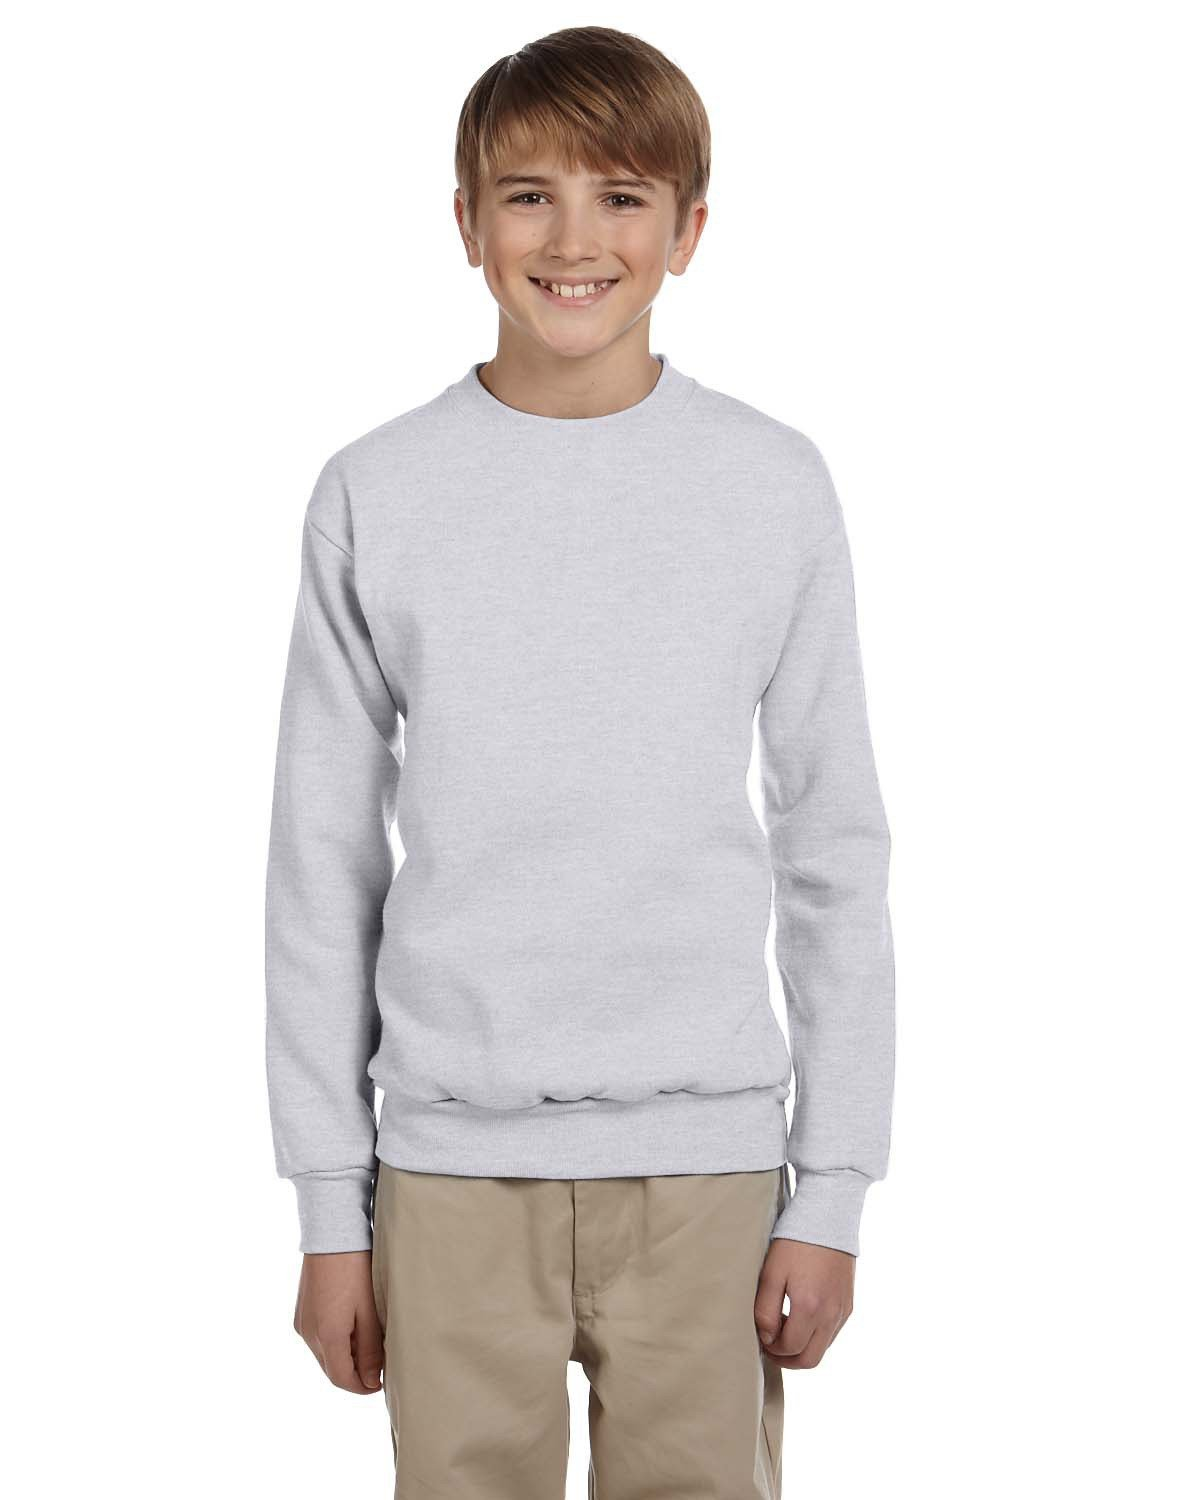 Hanes - P360 - Youth 7.8 oz. ComfortBlend® EcoSmart® 50/50 Fleece Crew